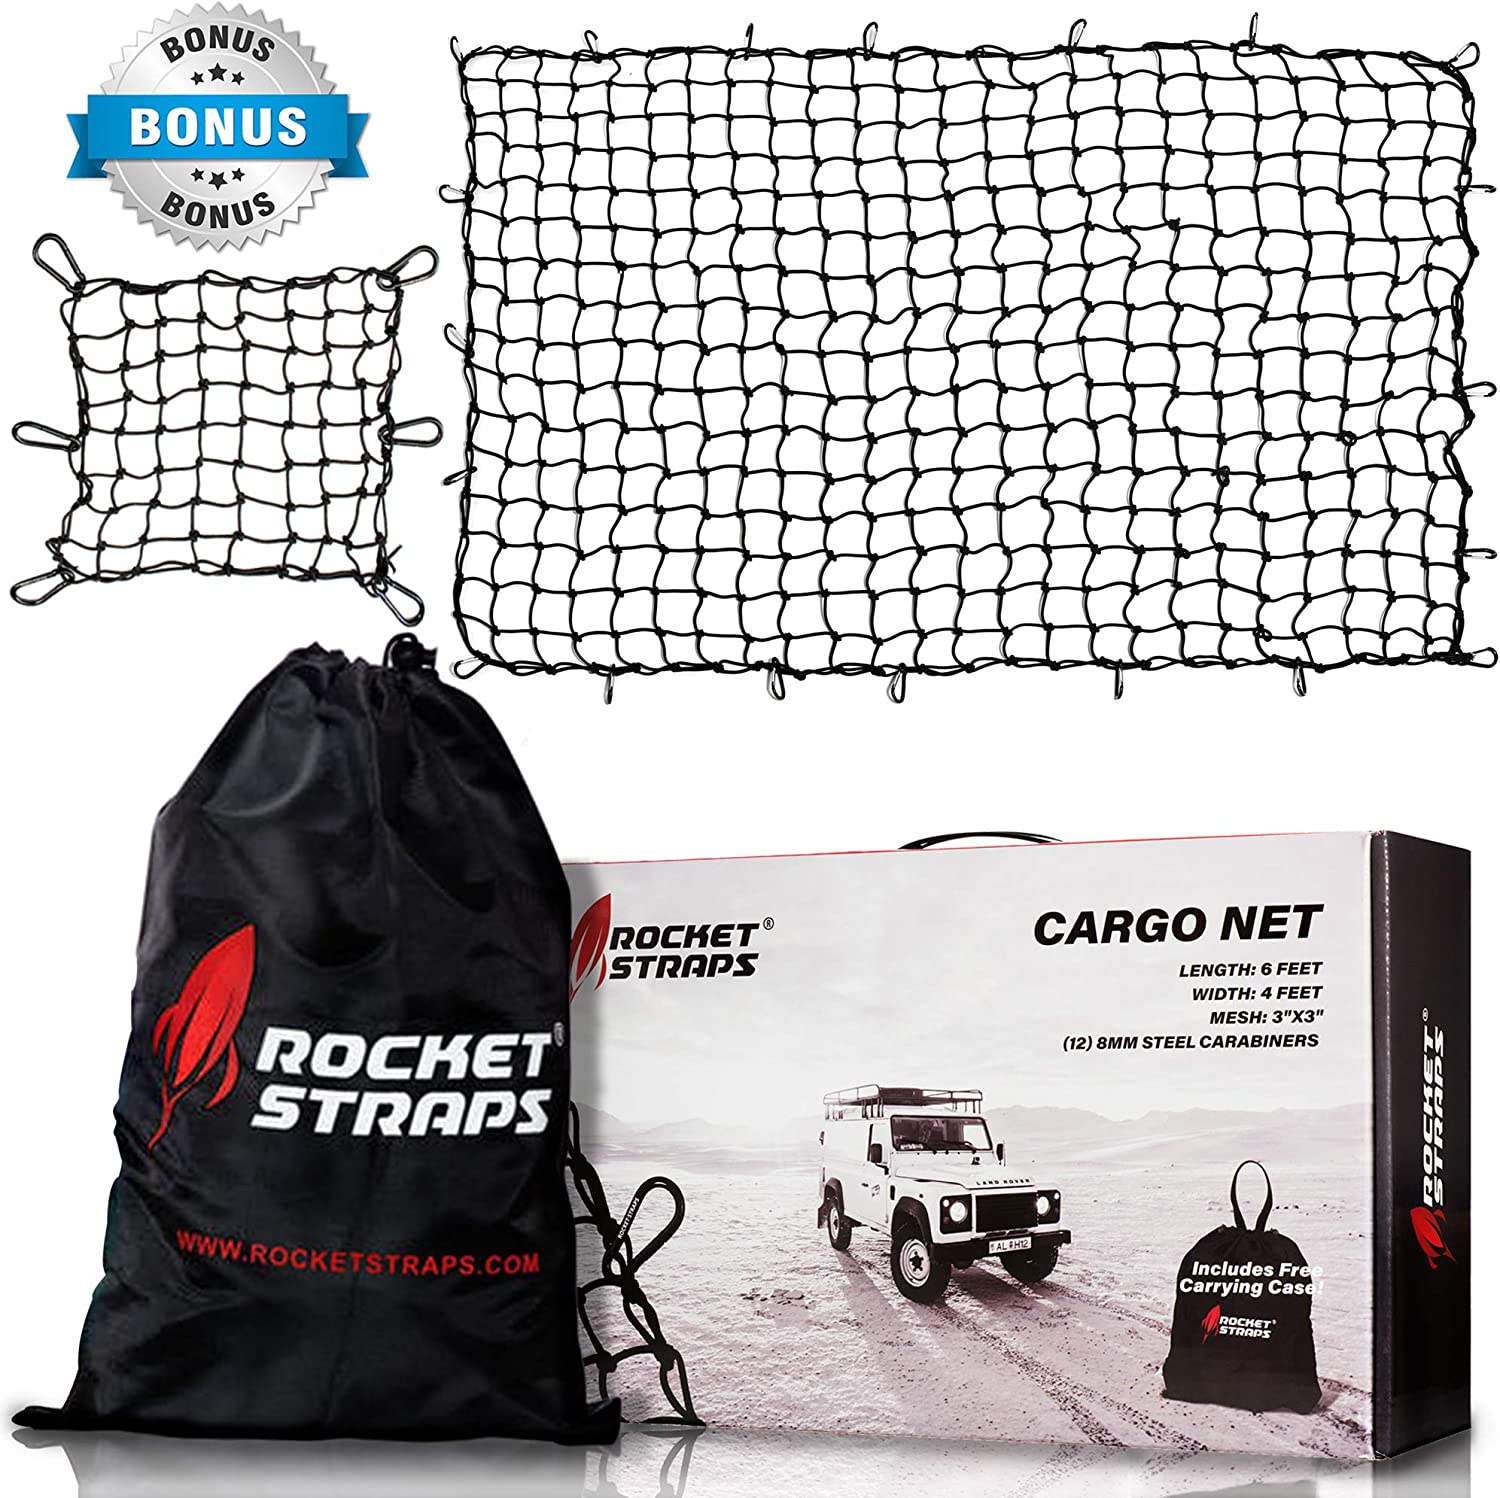 10 ABS Hooks /& 1 Storage Bag for Pickup Trucks SUV Trailer w// 16 Tangle-Free D Clip Carabiners Kohree Truck Bed Cargo Net 4x6 Stretches to 8x12